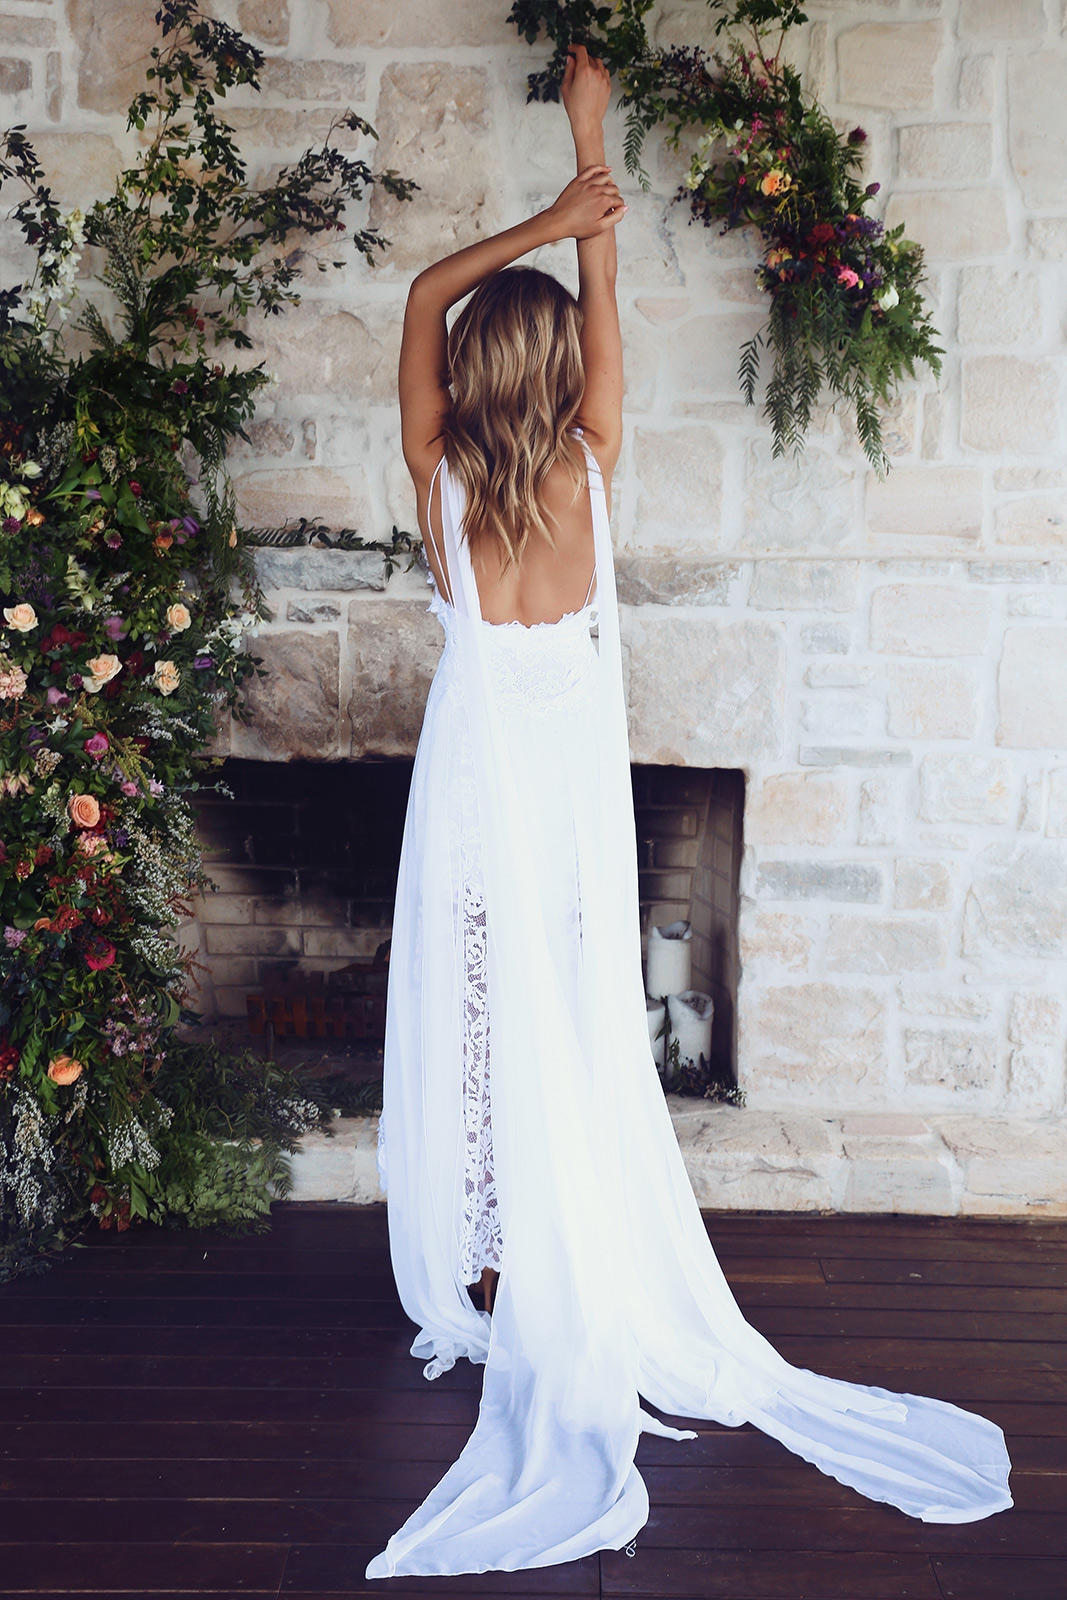 Hollie 2 wedding dress most pinned on pinterest beautiful (1)